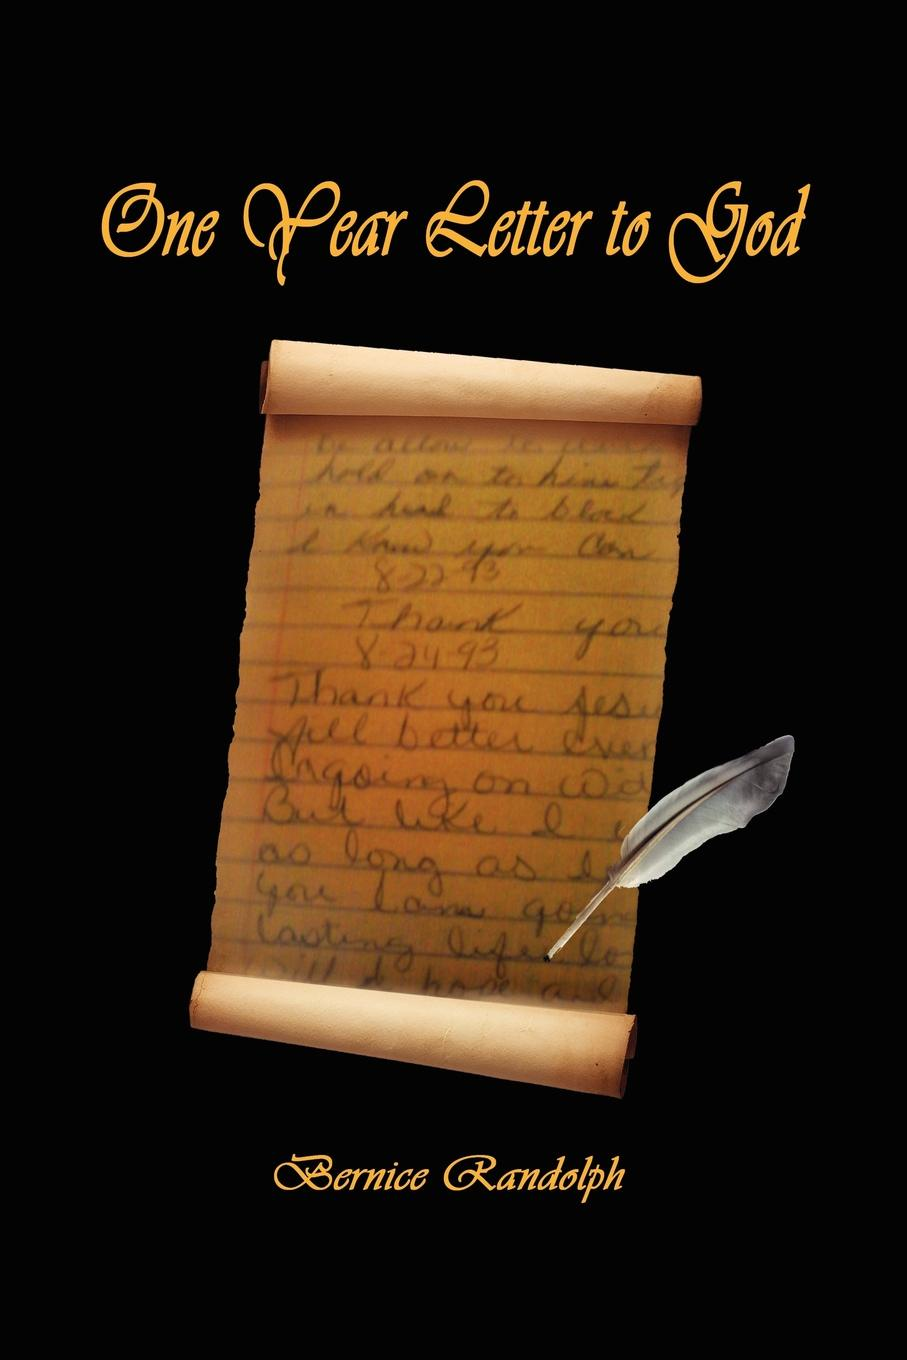 Bernice Randolph One-Year Letter to God just one year